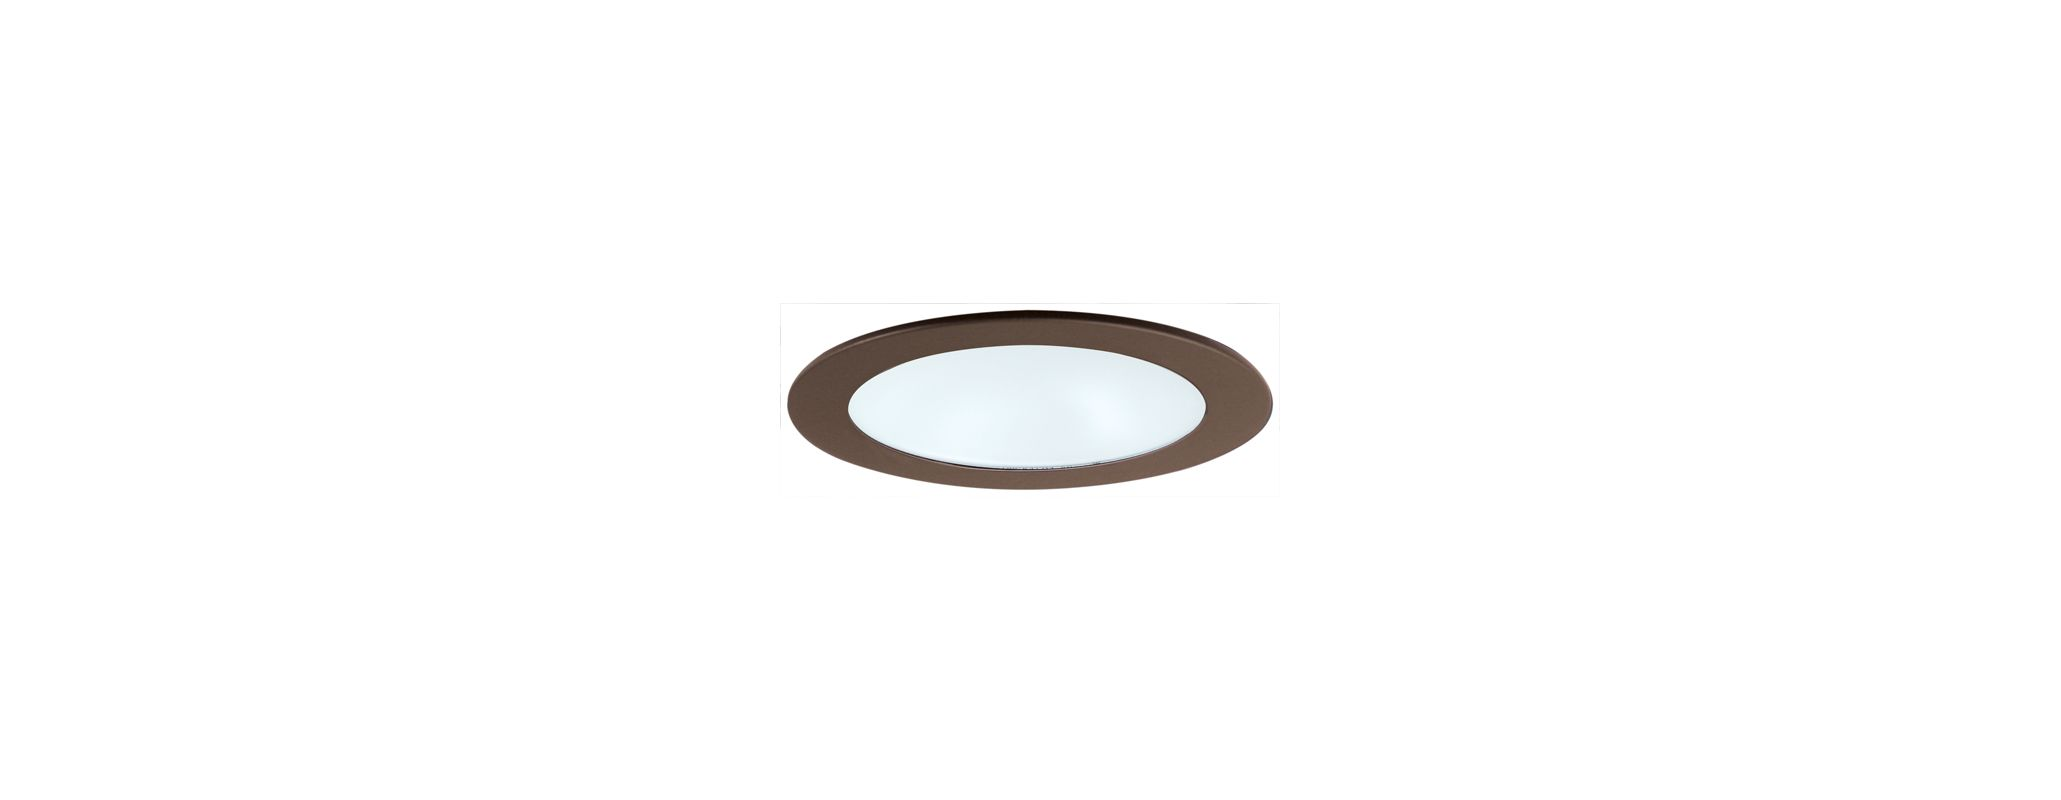 "Elco EL512K 5"" Shower Trim with Albalite Lens and Socket Holder"